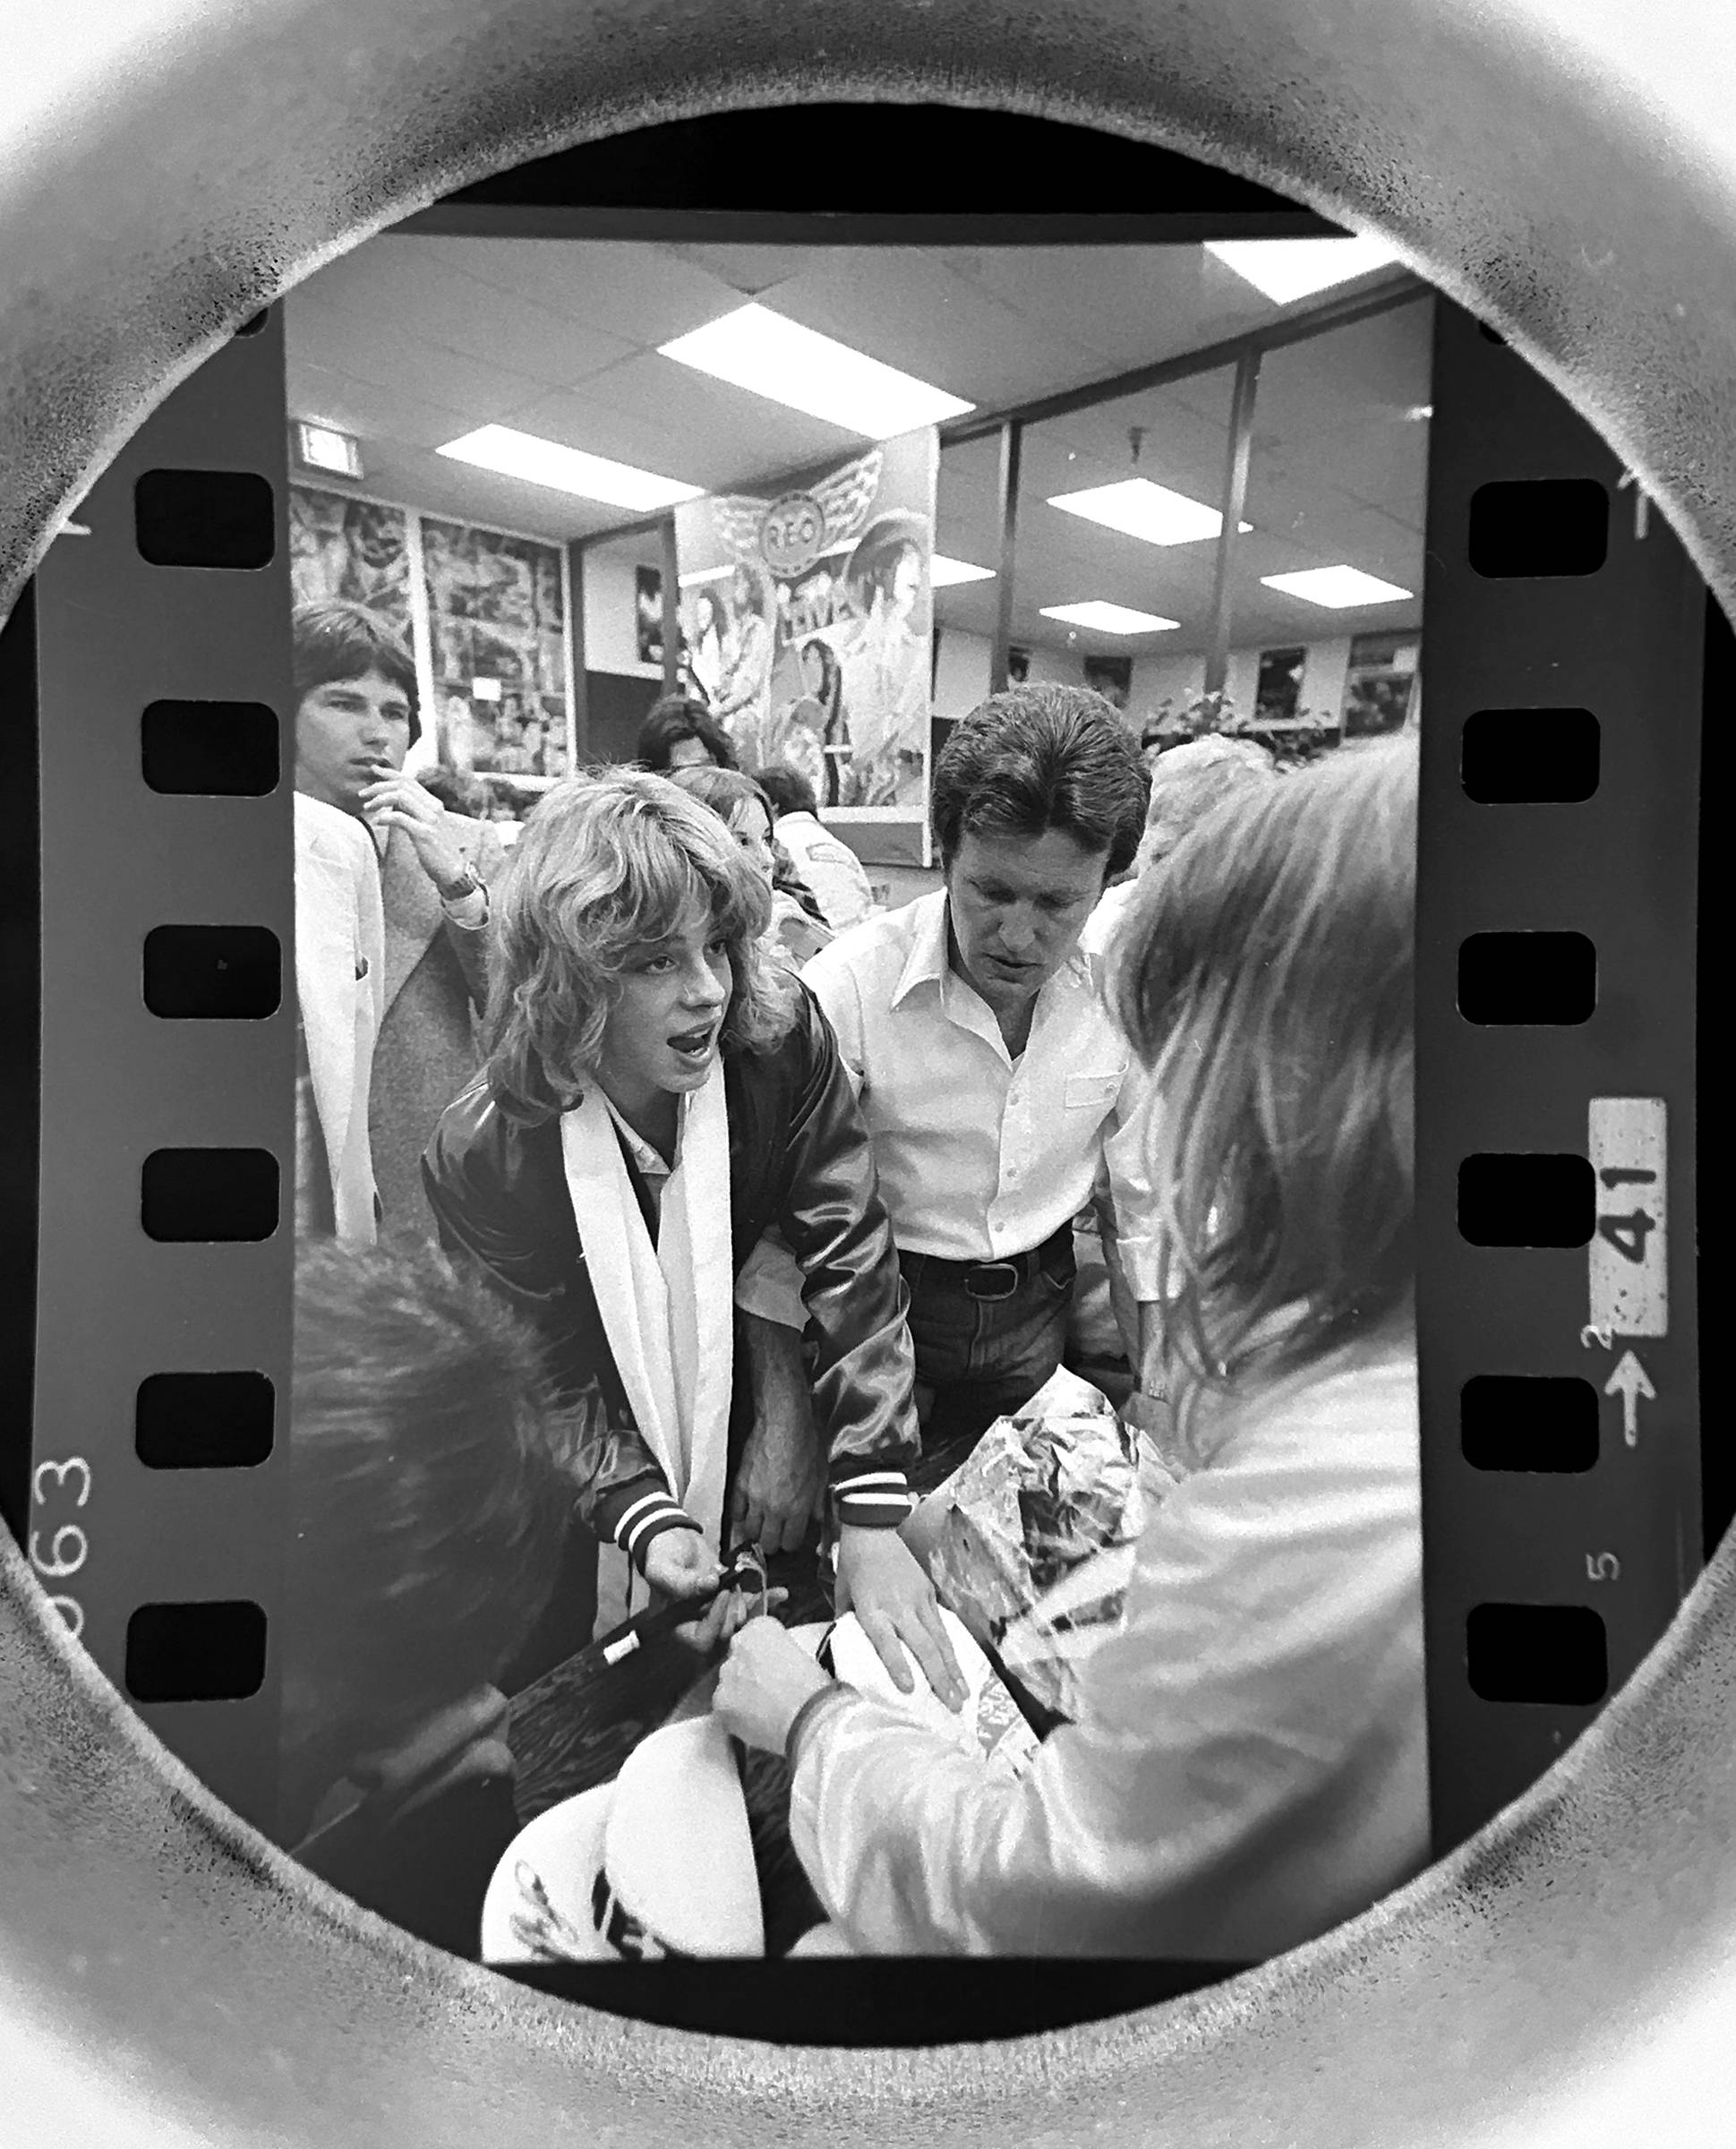 The Daily Herald archive, Assignment # 46,831, Barry Jarvinen photo: Teen heartthrob Leif Garrett met fans at Flipside Records in Hoffman Estates in April of 1978.